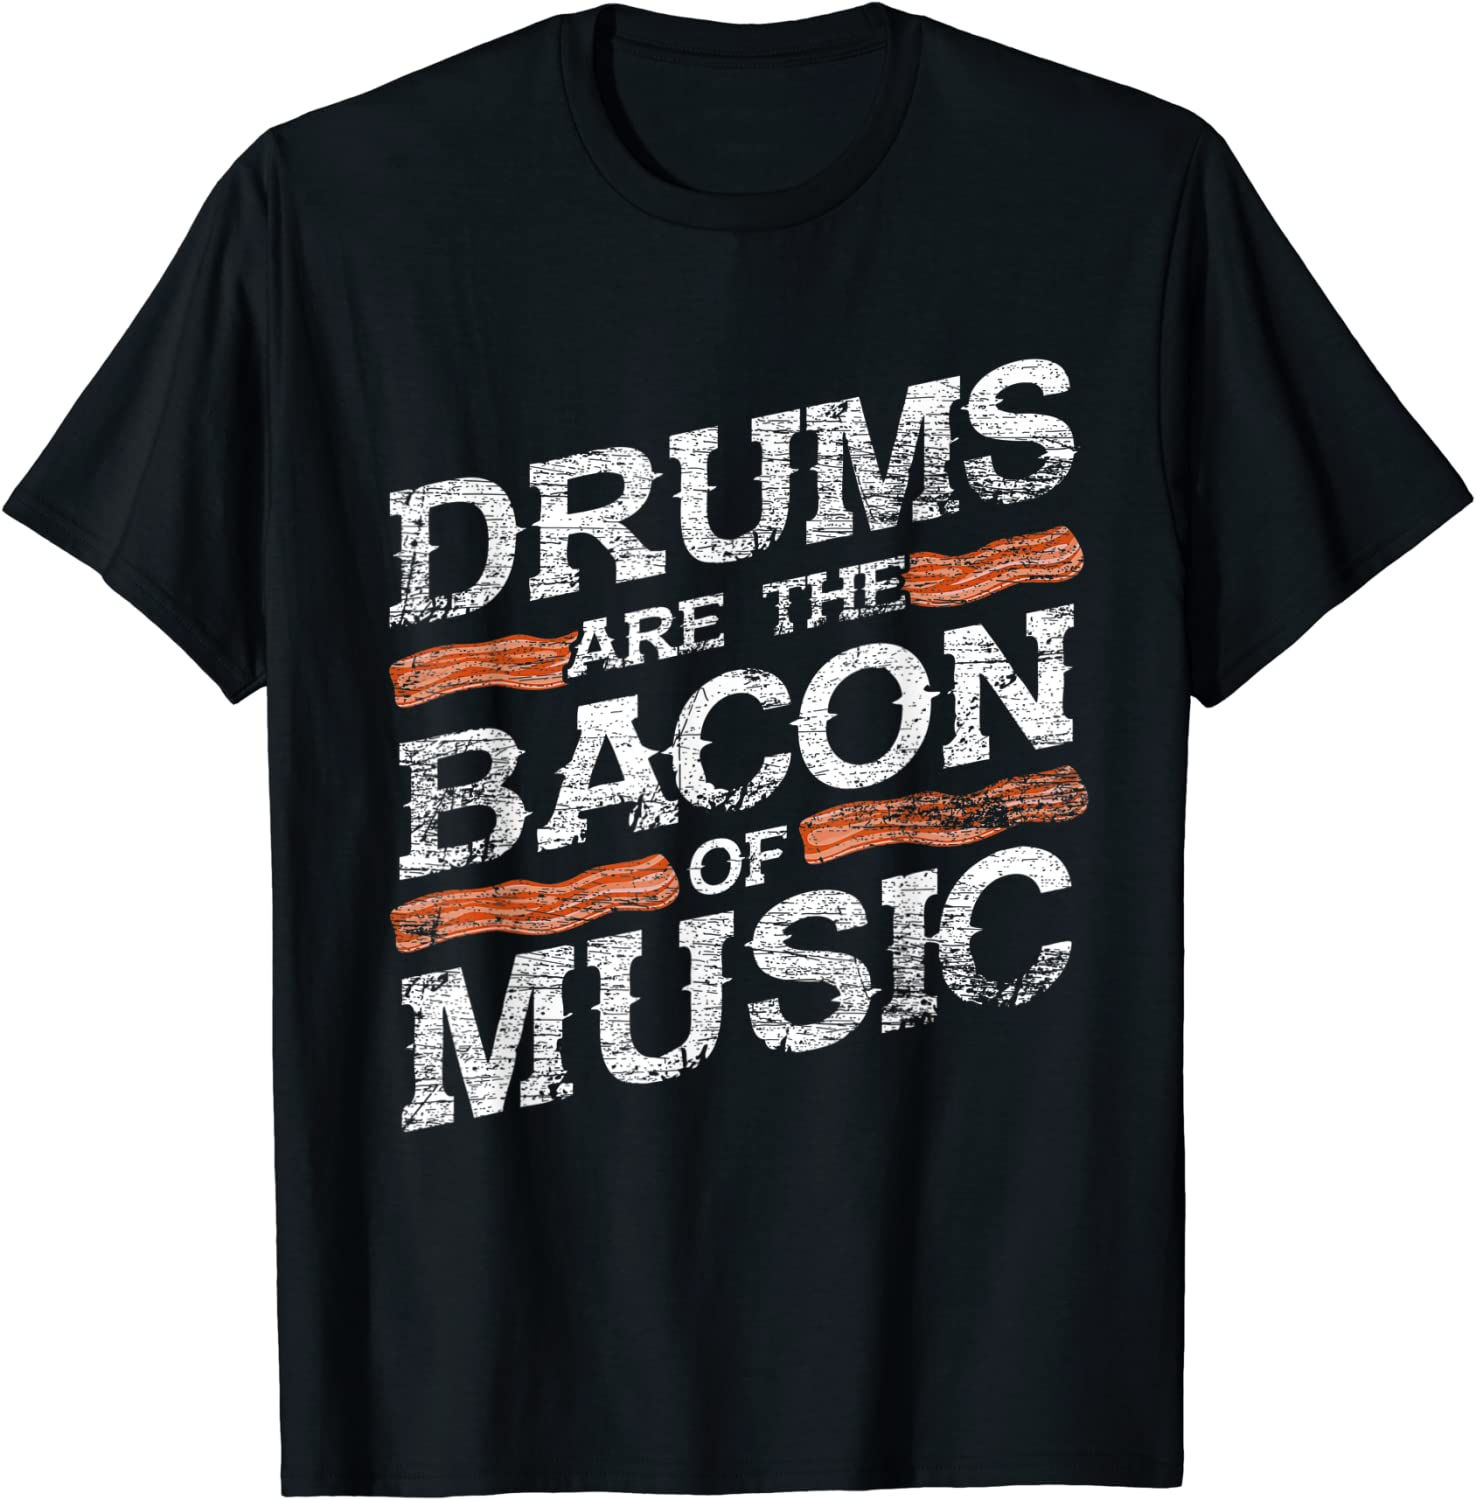 Ranking integrated 1st 1 year warranty place Bacon Of Music Musician Drummer T-Shirt Drums